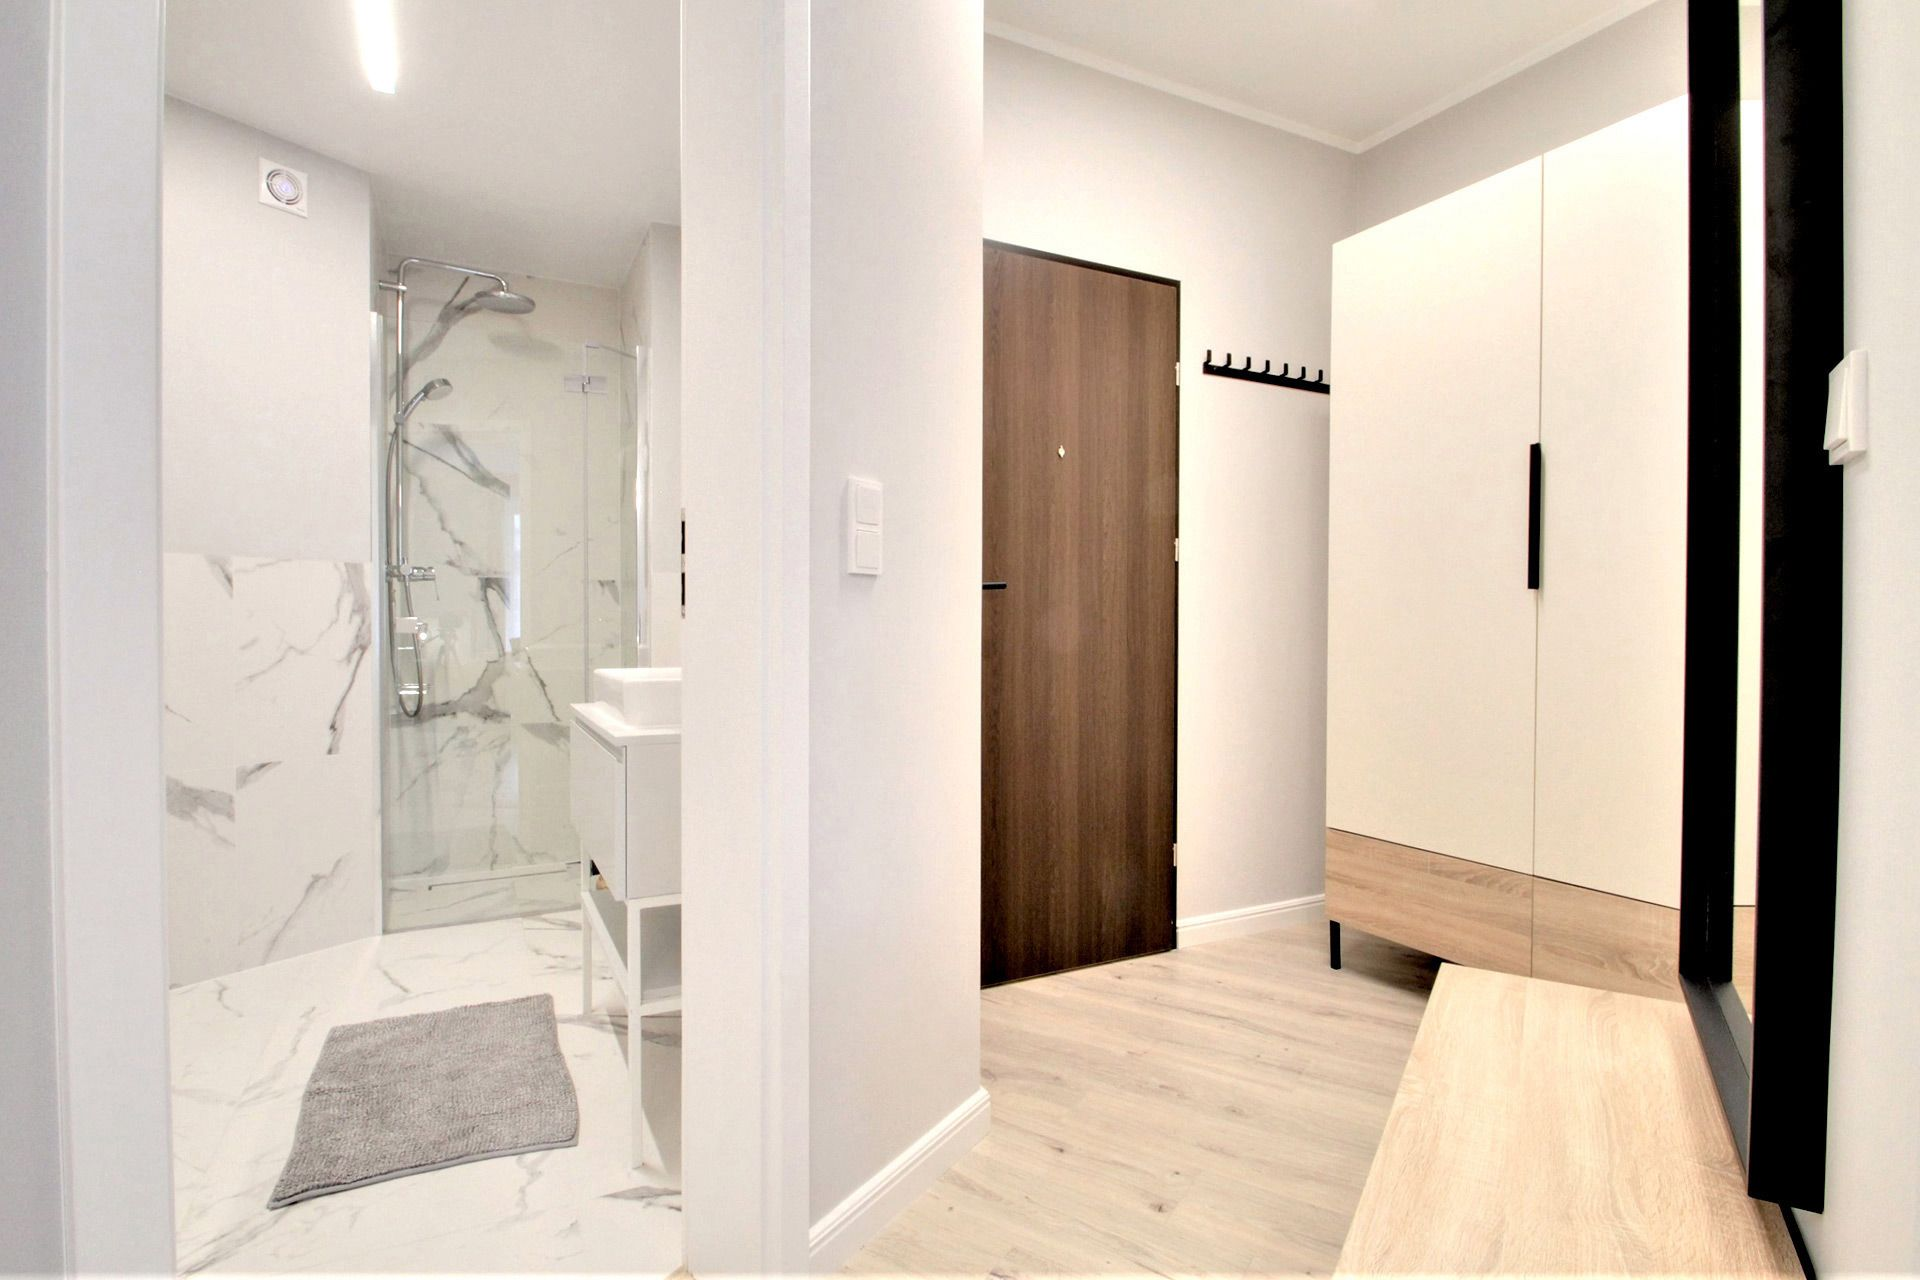 Studio - Medium apartment to rent in Warsaw UPR-A-015-2